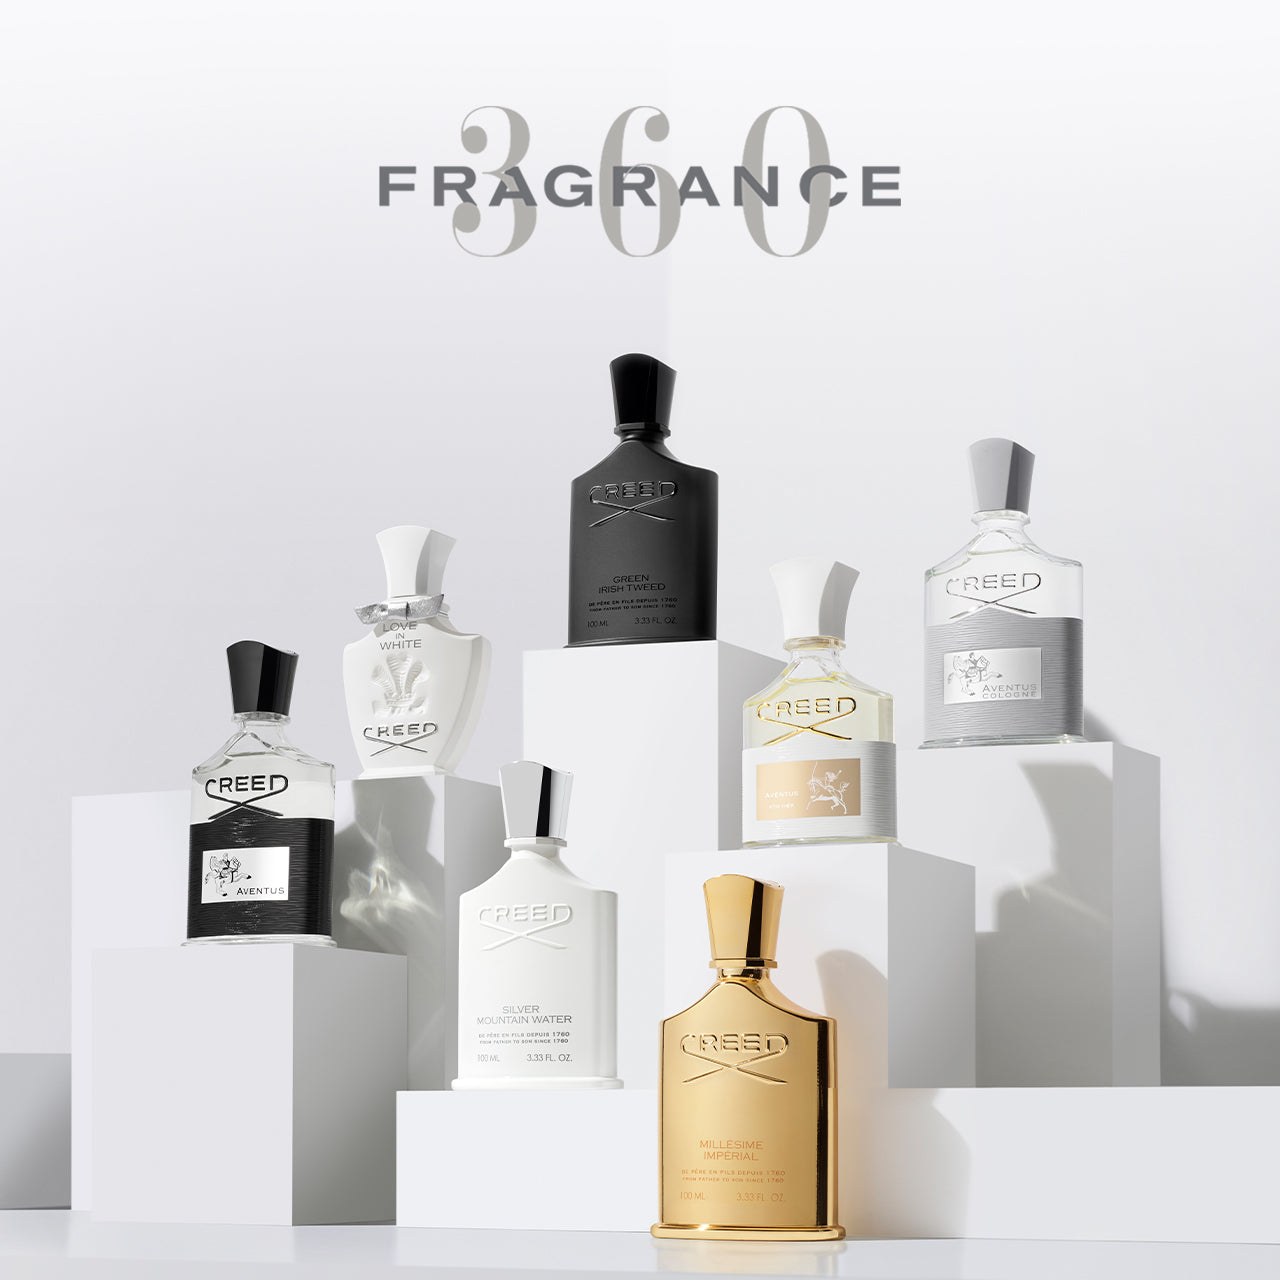 From left to right, bottles of Aventus, Love In White, Silver Mountain Water, Green Irish tweed, Millésime Impérial, Aventus For Her, and Aventus Cologne on plexiglass platforms